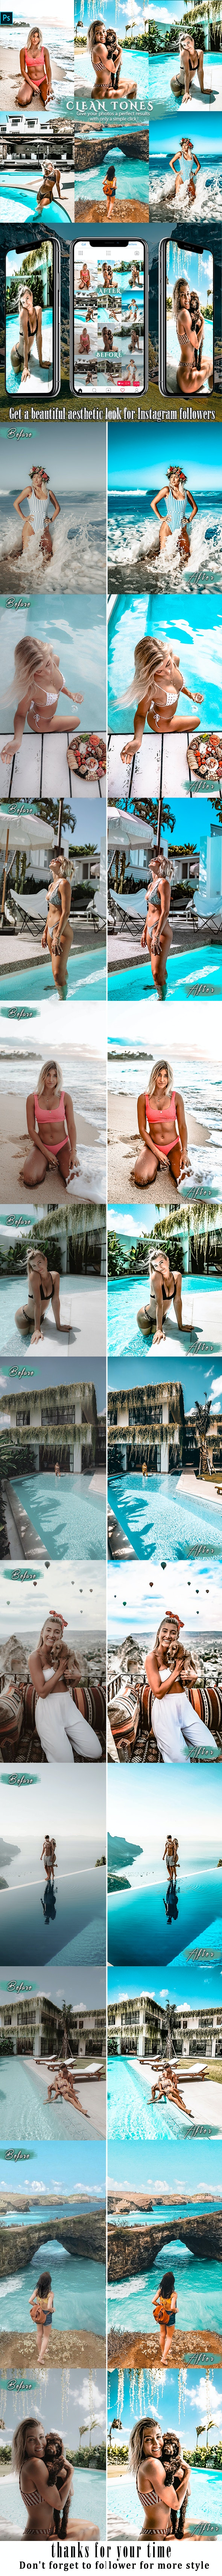 Clean Effects Travel Photoshop Actions - Photo Effects Actions